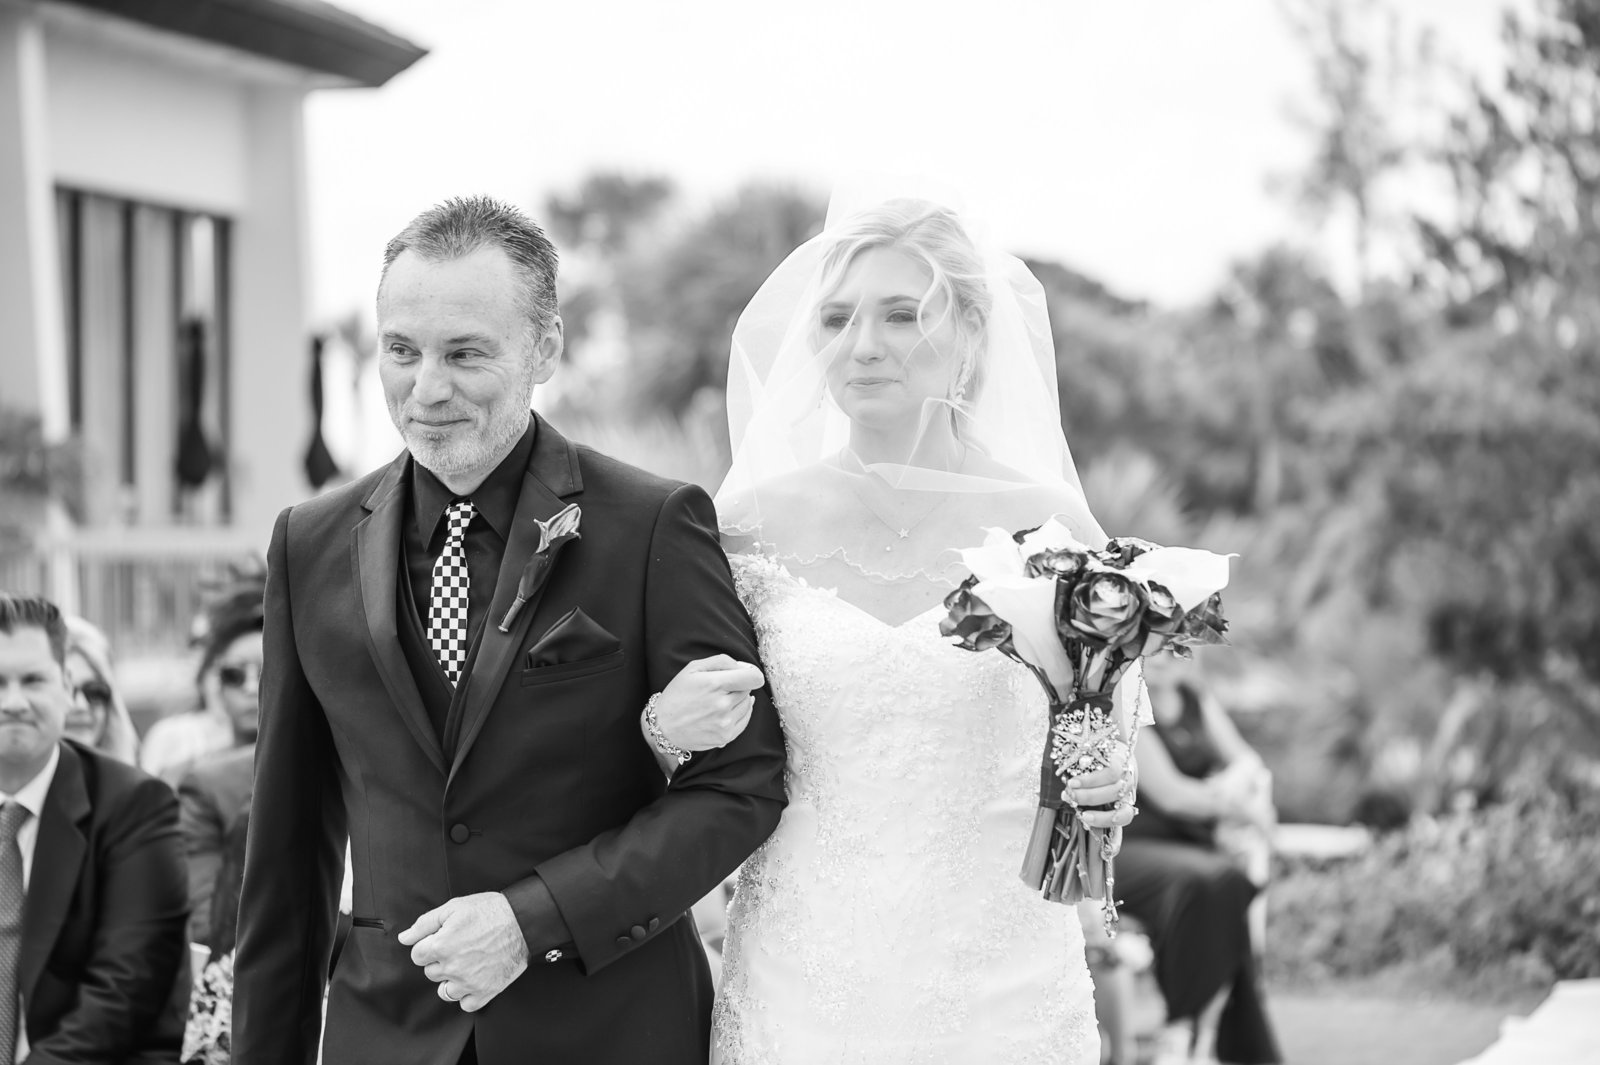 Dads Walking - Myacoo Country Club Wedding - Palm Beach Wedding Photography by Palm Beach Photography, Inc.